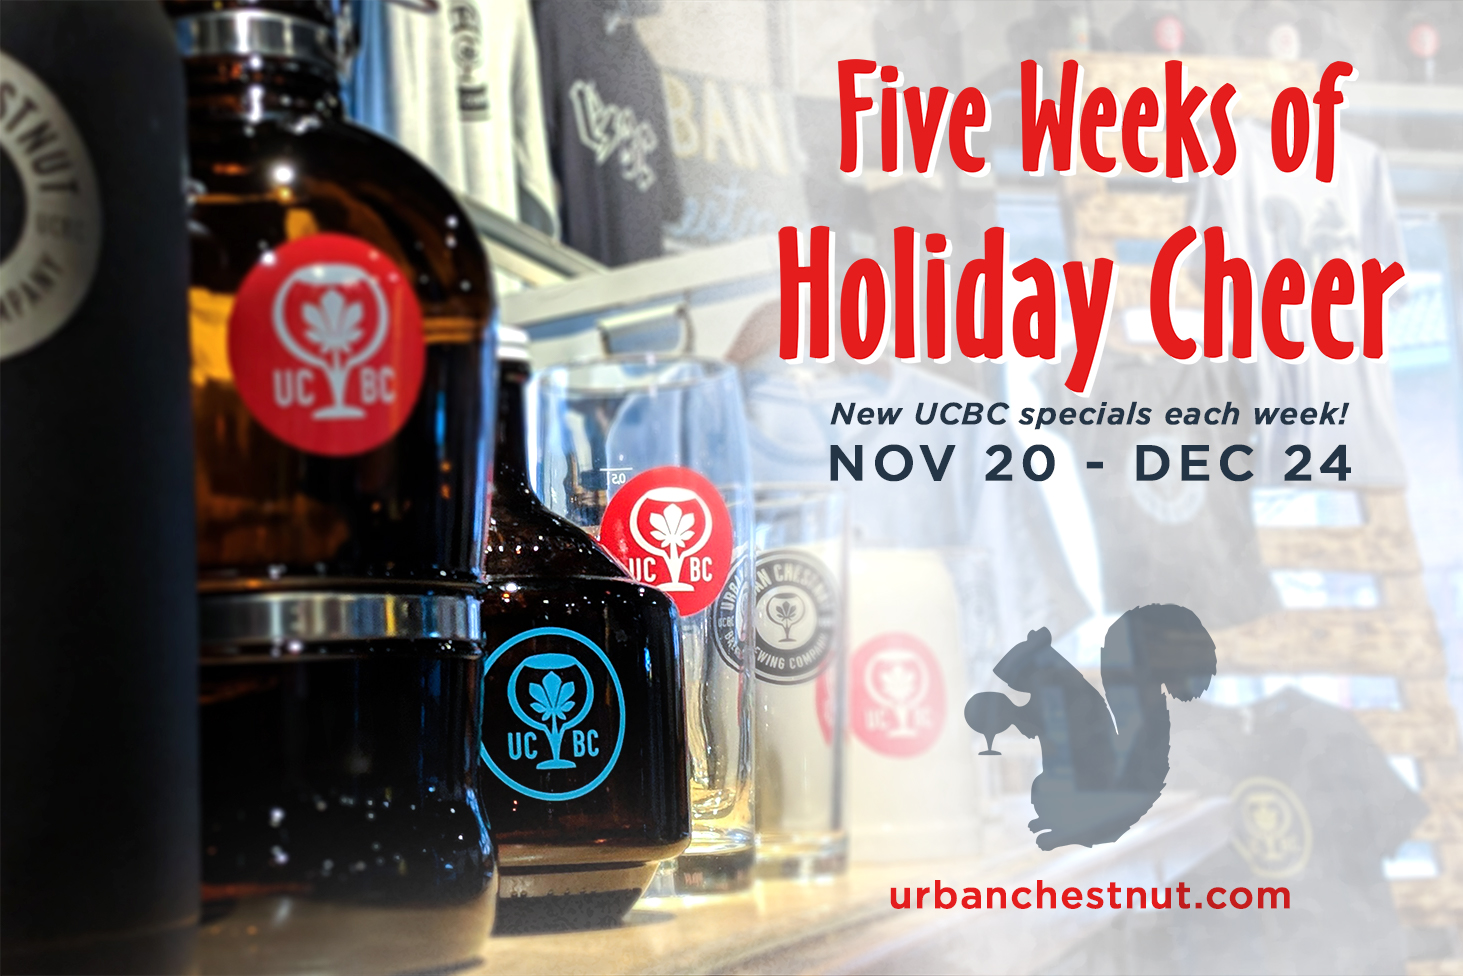 Enjoy special discounts on Urban Chestnut items for five weeks leading up to Christmas Eve!